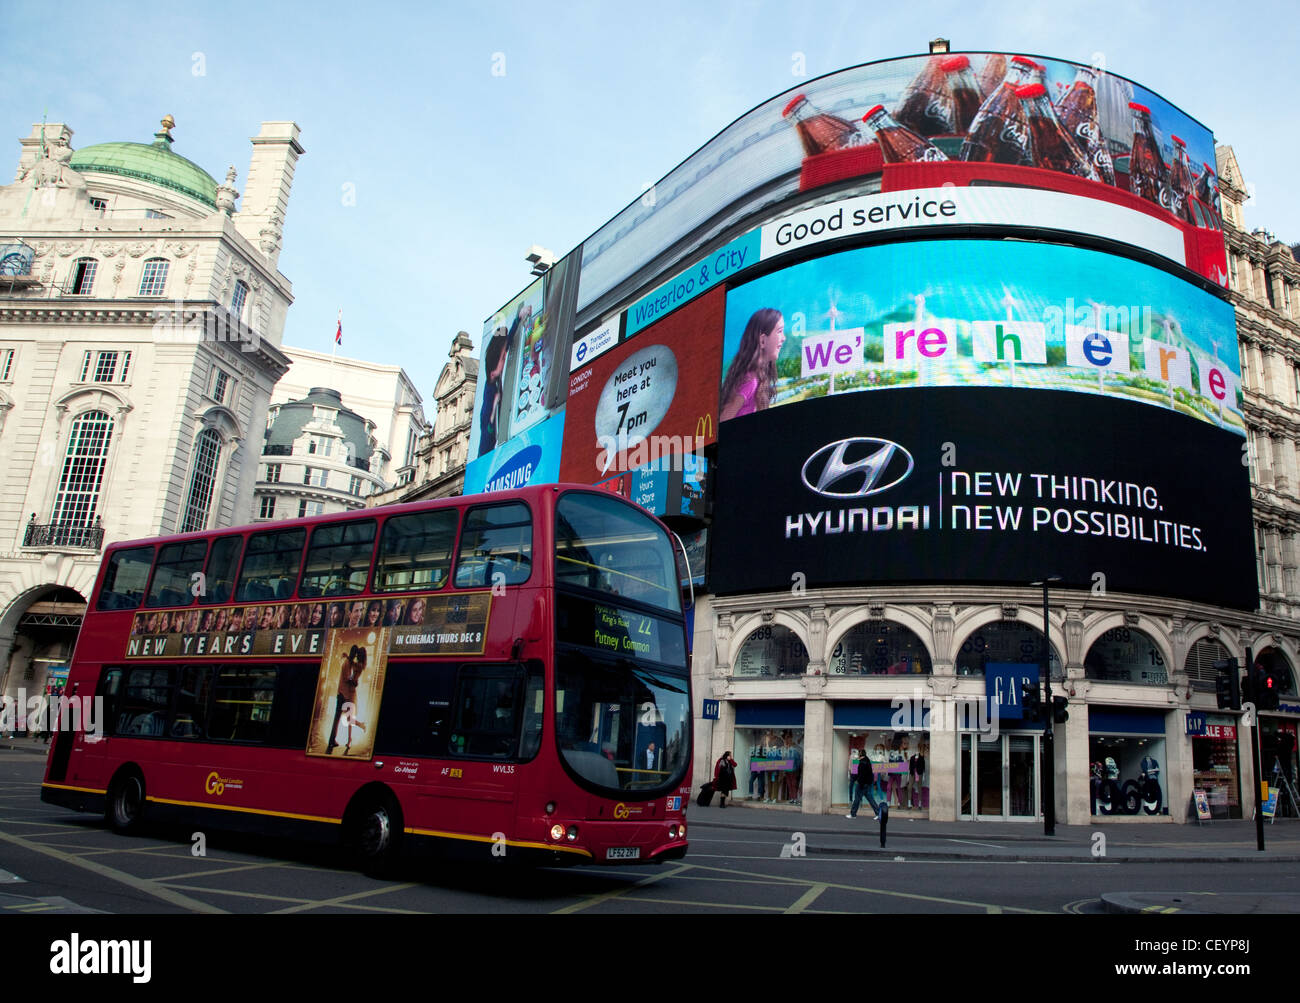 New digital advertising display at Piccadilly Circus, London - Stock Image